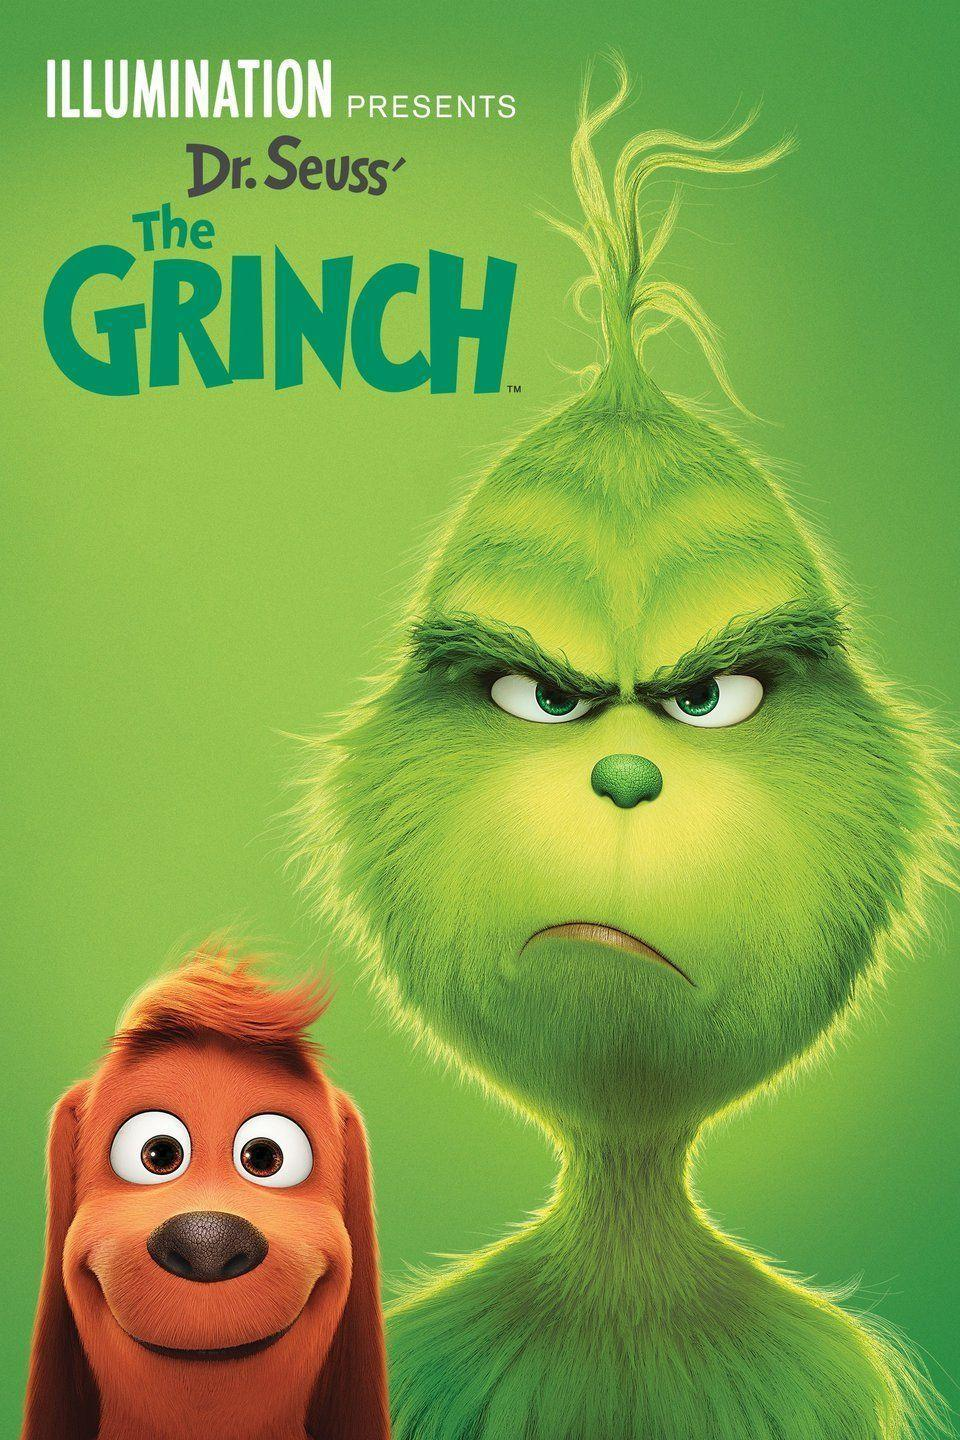 """<p>The classic film gets a redo in this new animated version of <em>The Grinch</em>. Will he succeed in ruining Christmas for the village of Whoville, or will his heart grow three sizes?</p><p><a class=""""link rapid-noclick-resp"""" href=""""https://www.netflix.com/title/80996790"""" rel=""""nofollow noopener"""" target=""""_blank"""" data-ylk=""""slk:STREAM NOW"""">STREAM NOW</a></p>"""